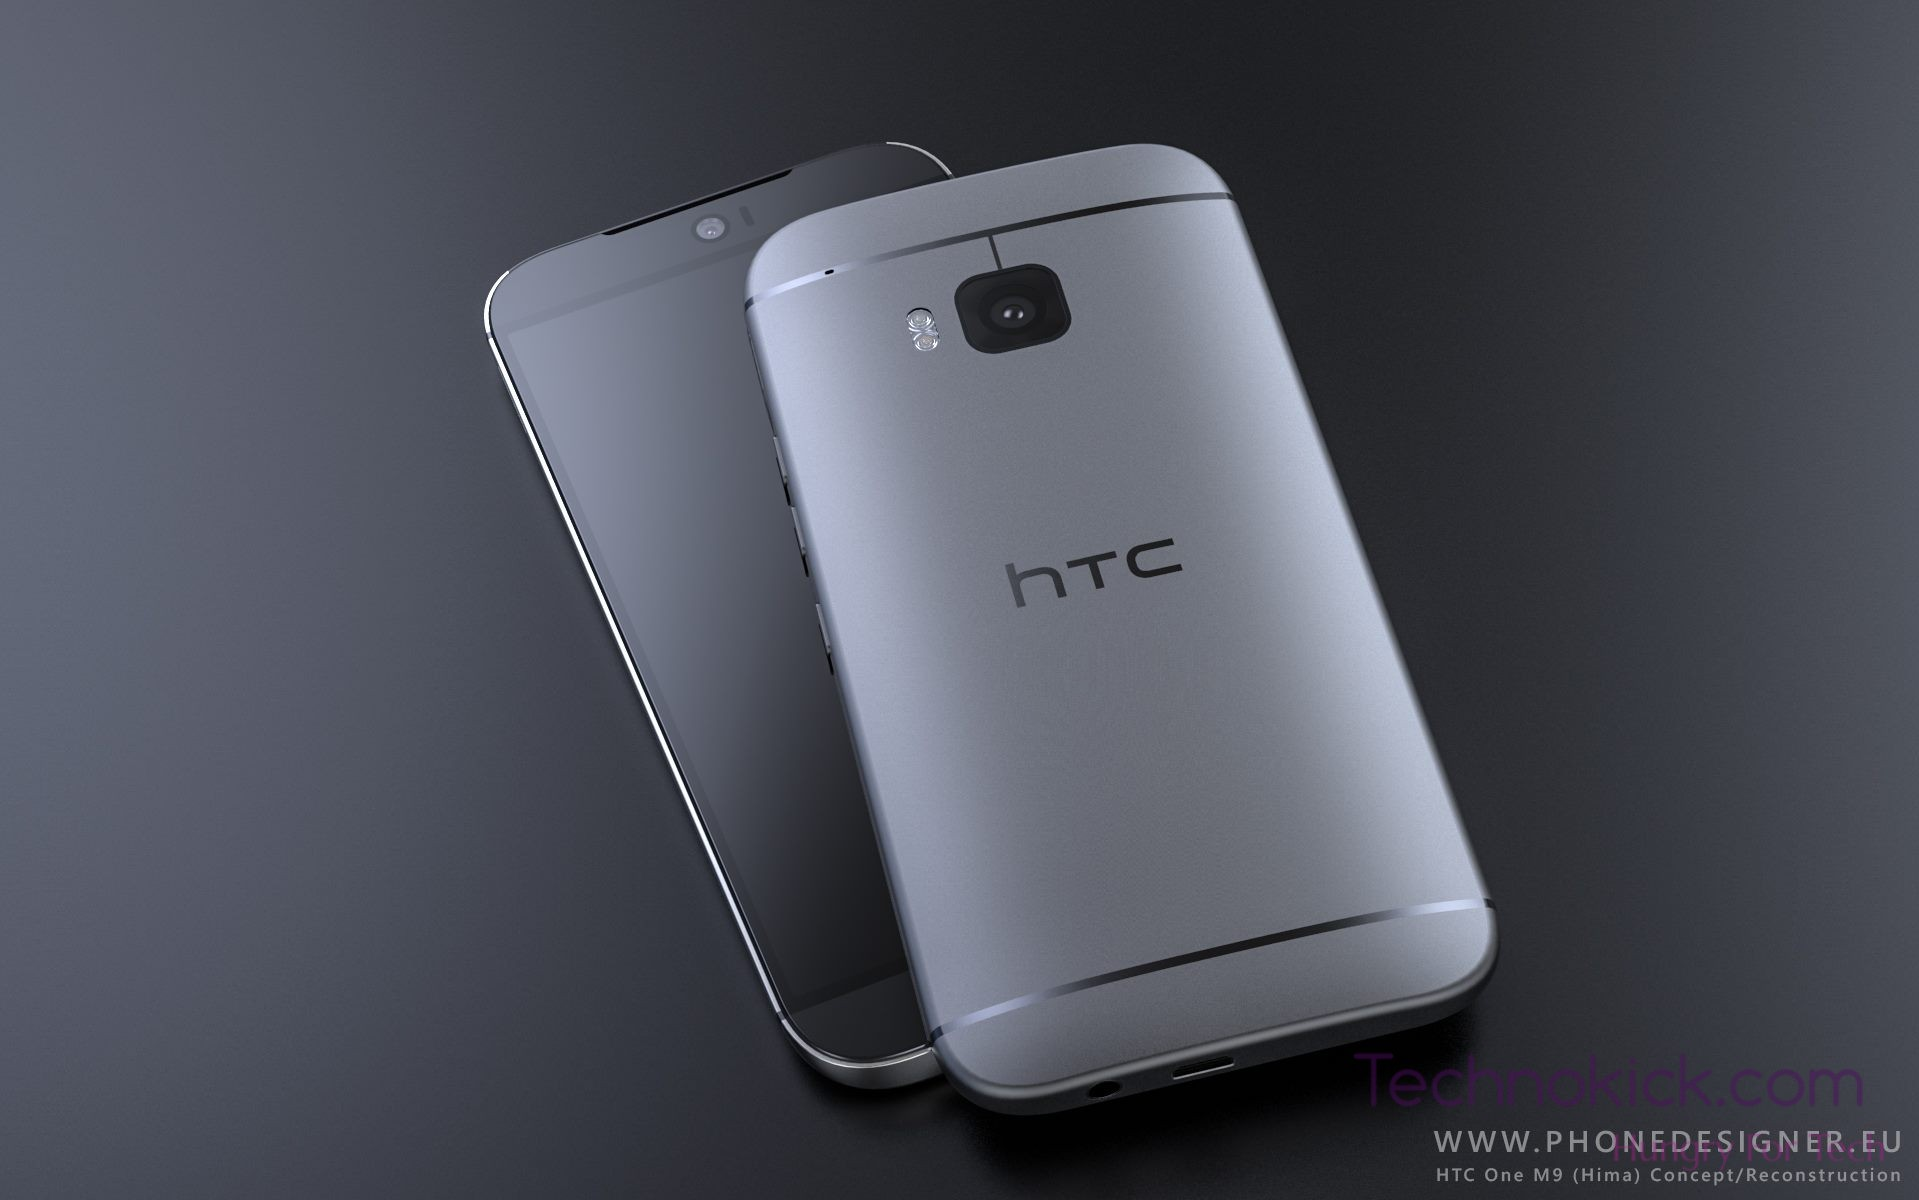 HTC-One-M9-renders—this-phone-is-on-fire